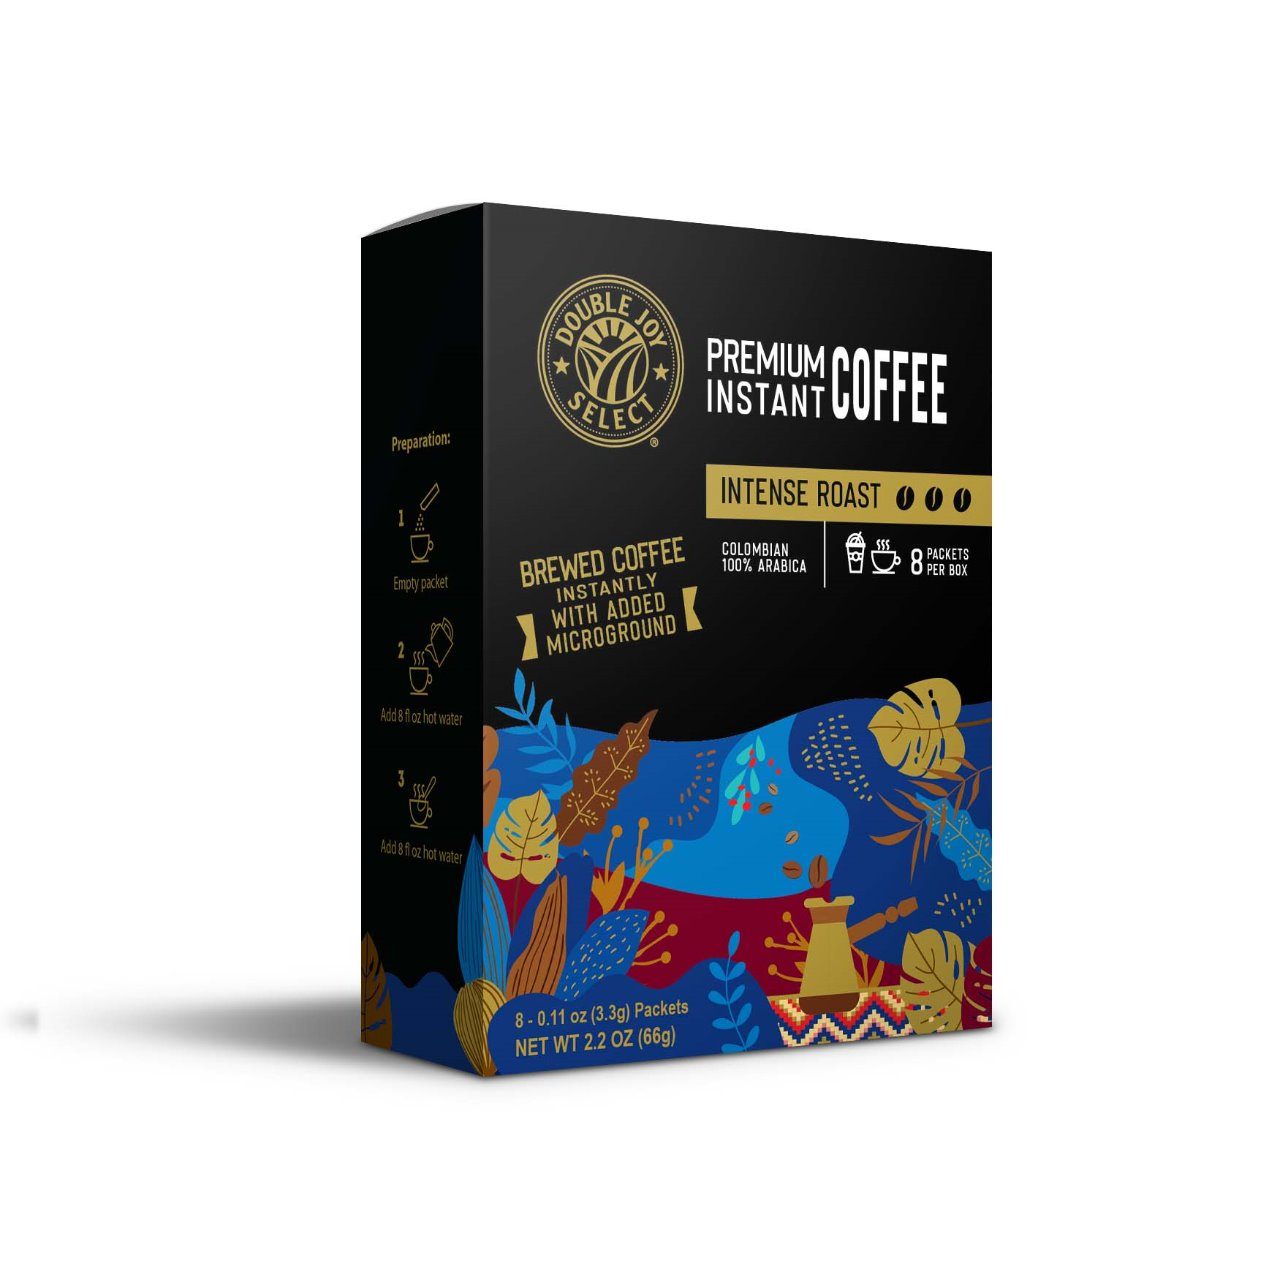 Intense Dark Roast Instant Coffee - 20 Packets - FREE SHIPPING!